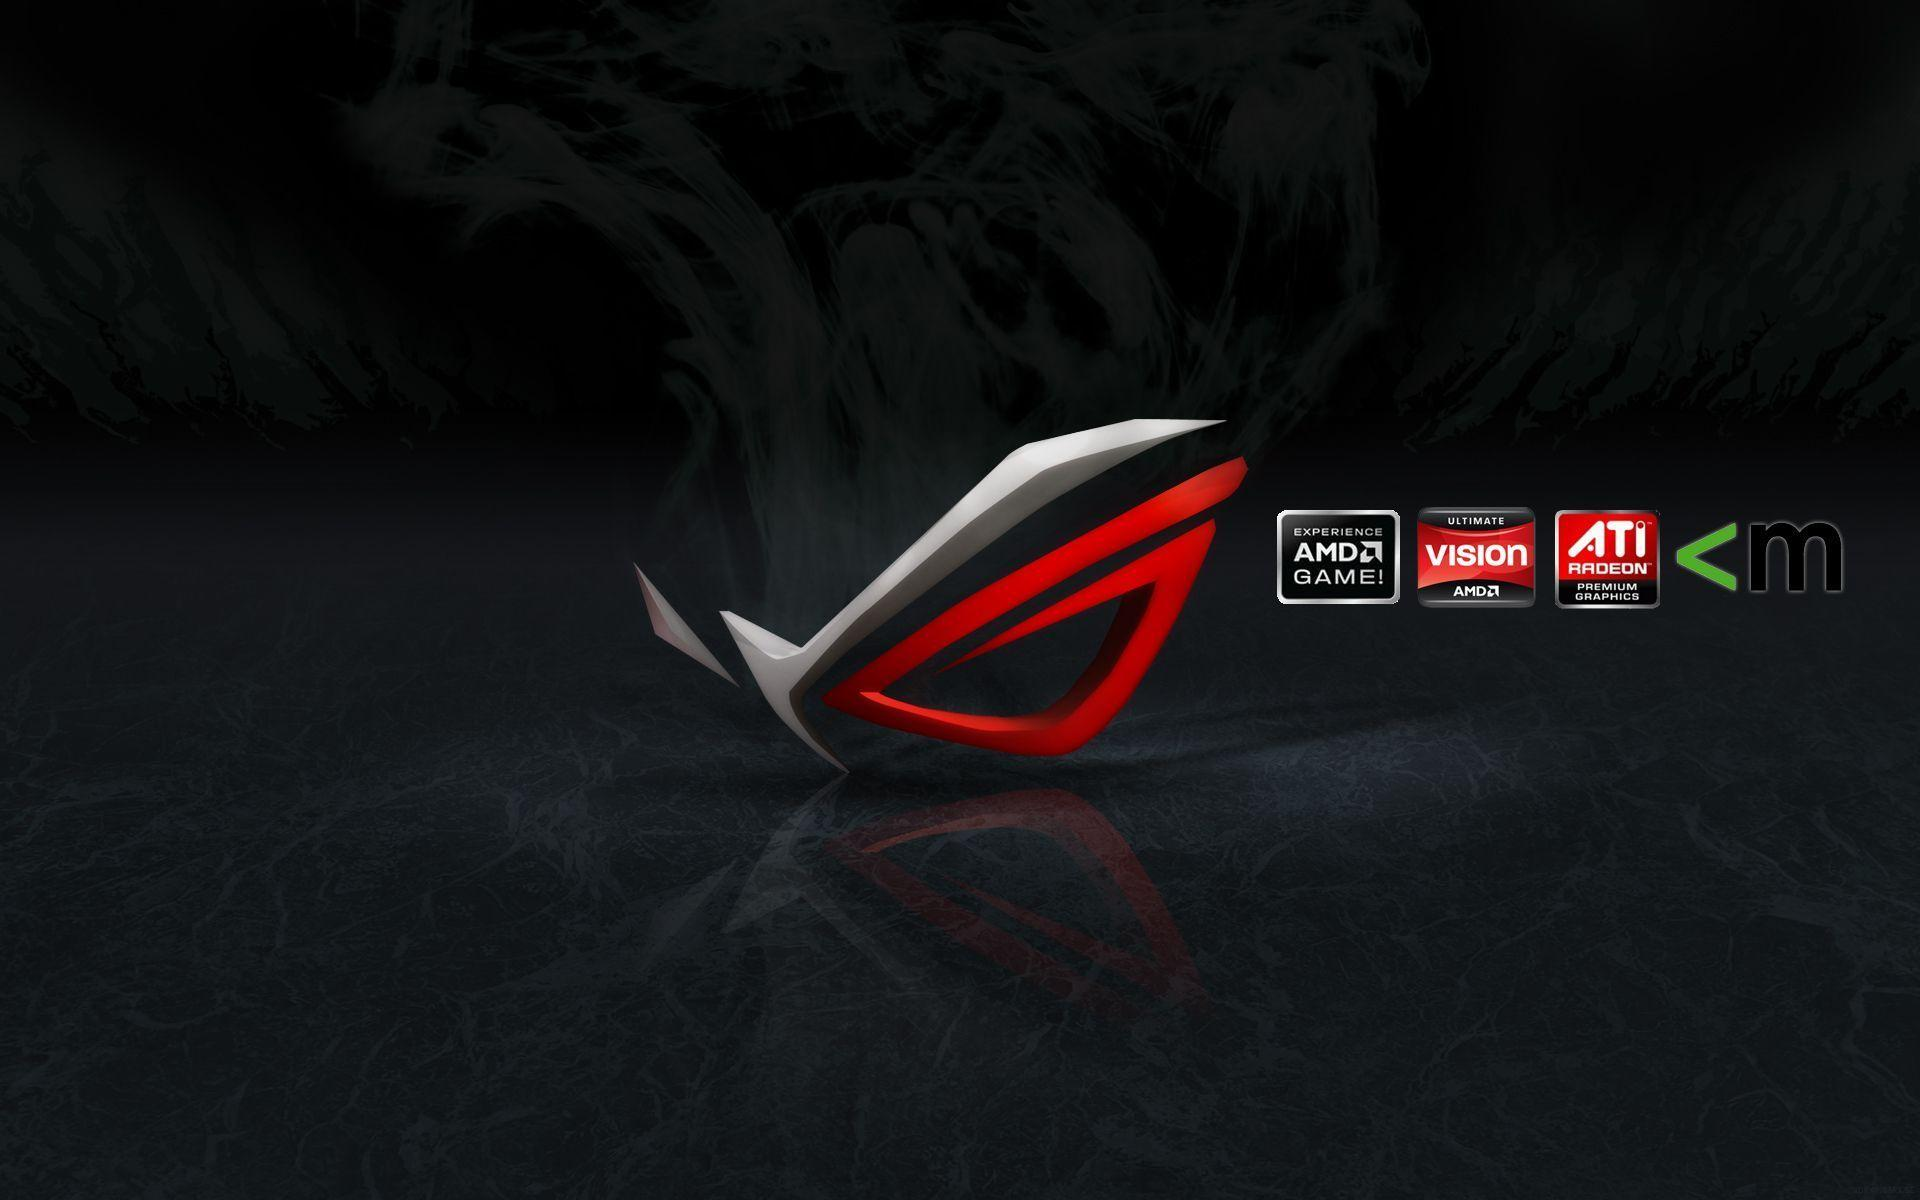 amd radeon wallpapers hd - photo #25